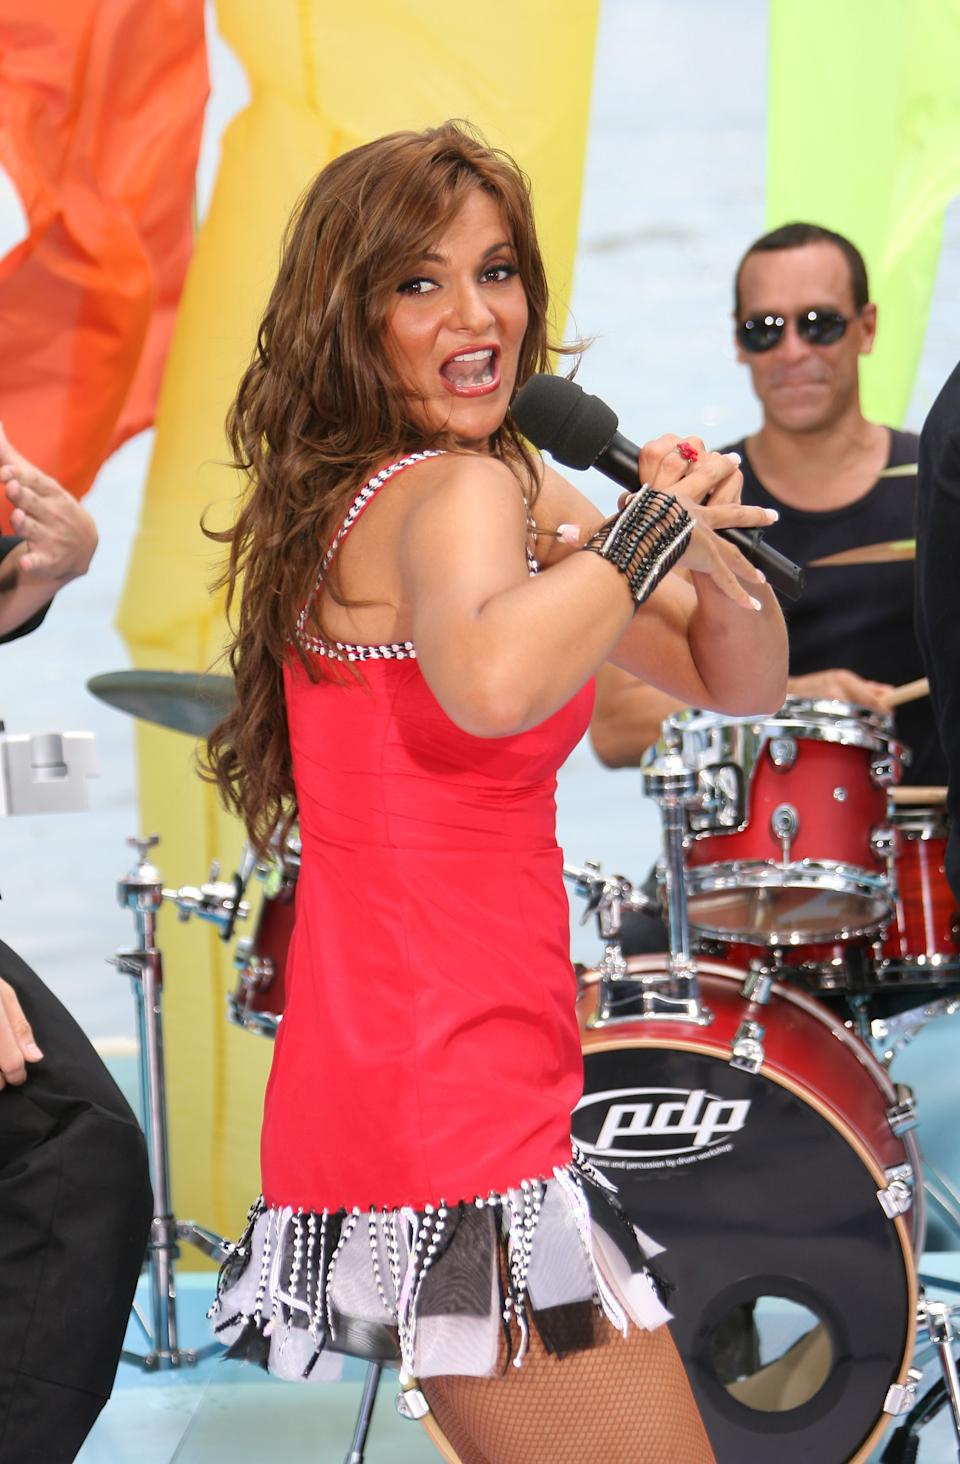 MIAMI - SEPTEMBER 01:  Mariana Seoane performs during Telefutura's Reventon del Dia del Trabajo at Bayside Marketplace on September 1, 2008 in Miami, Florida.  (Photo by Alexander Tamargo/Getty Images)